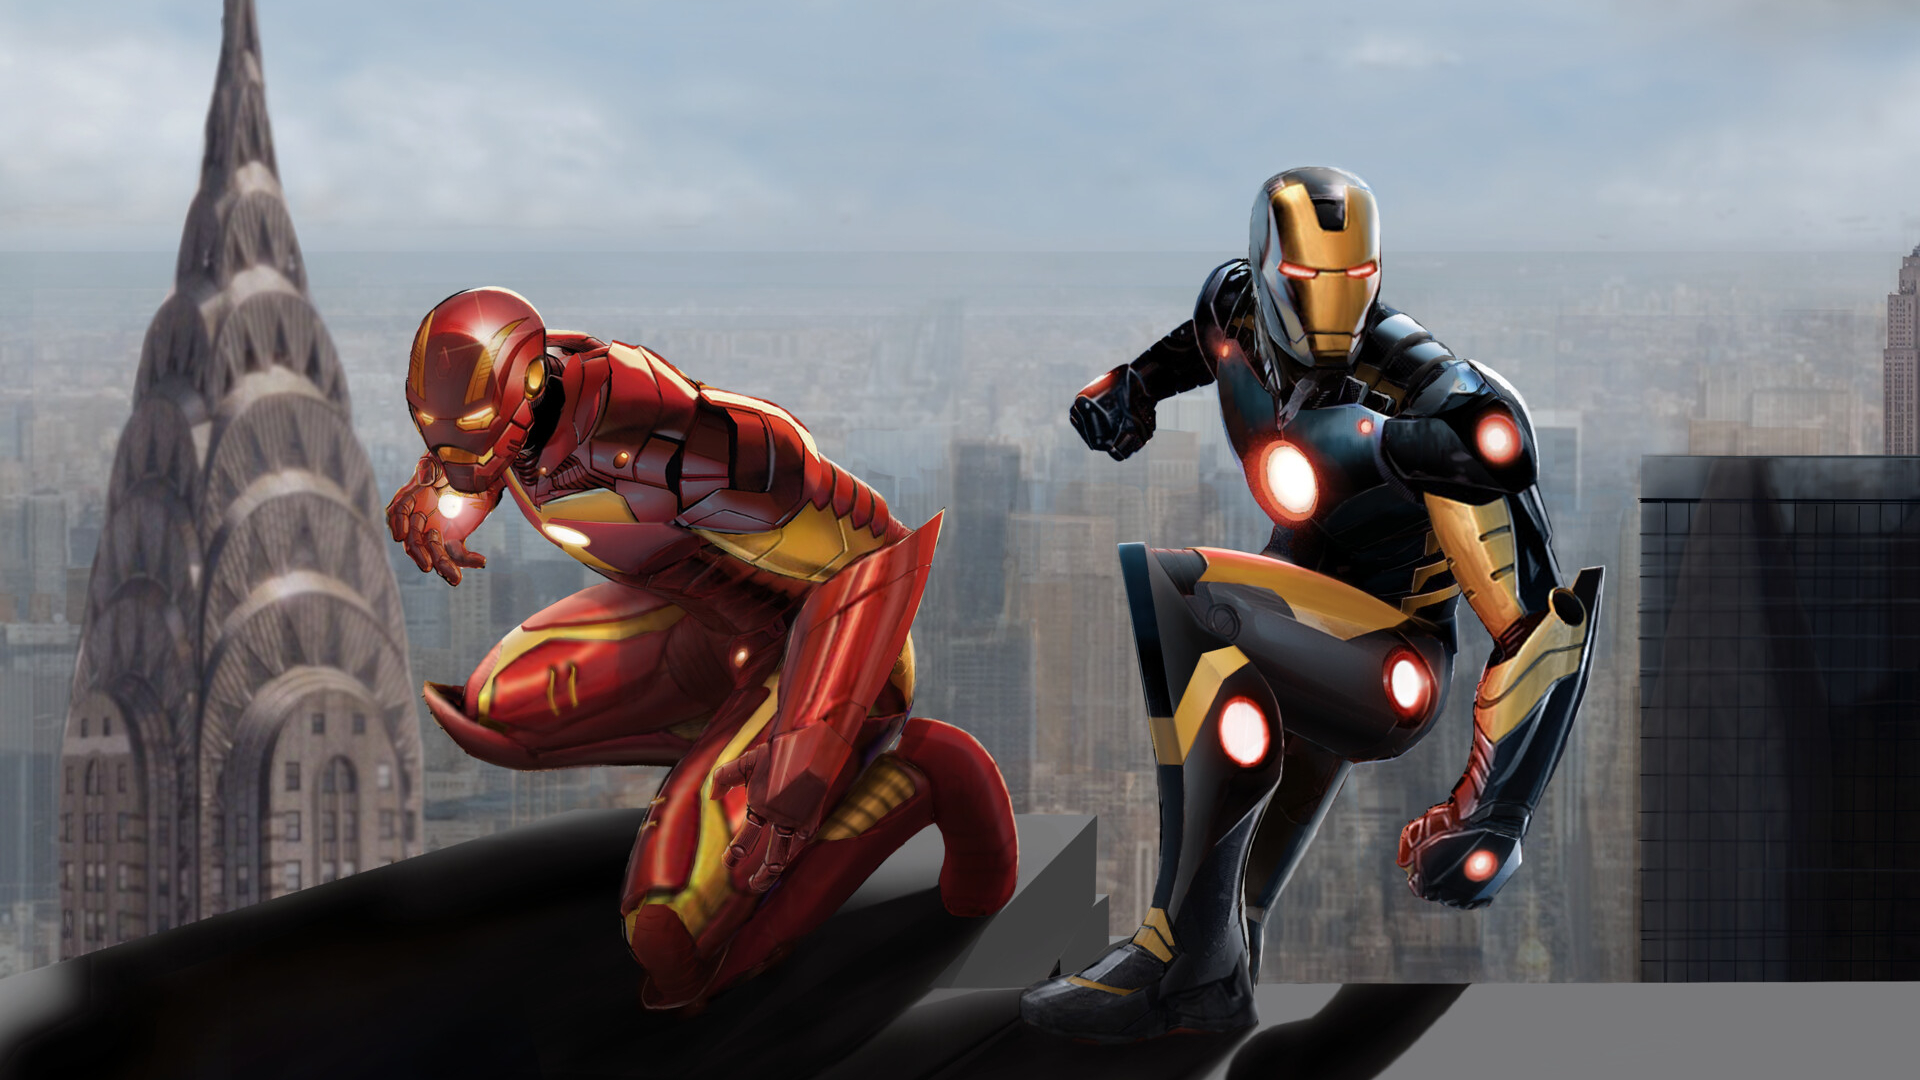 1920x1080 Iron Man New 2020 1080p Laptop Full Hd Wallpaper Hd Superheroes 4k Wallpapers Images Photos And Background Wallpapers Den